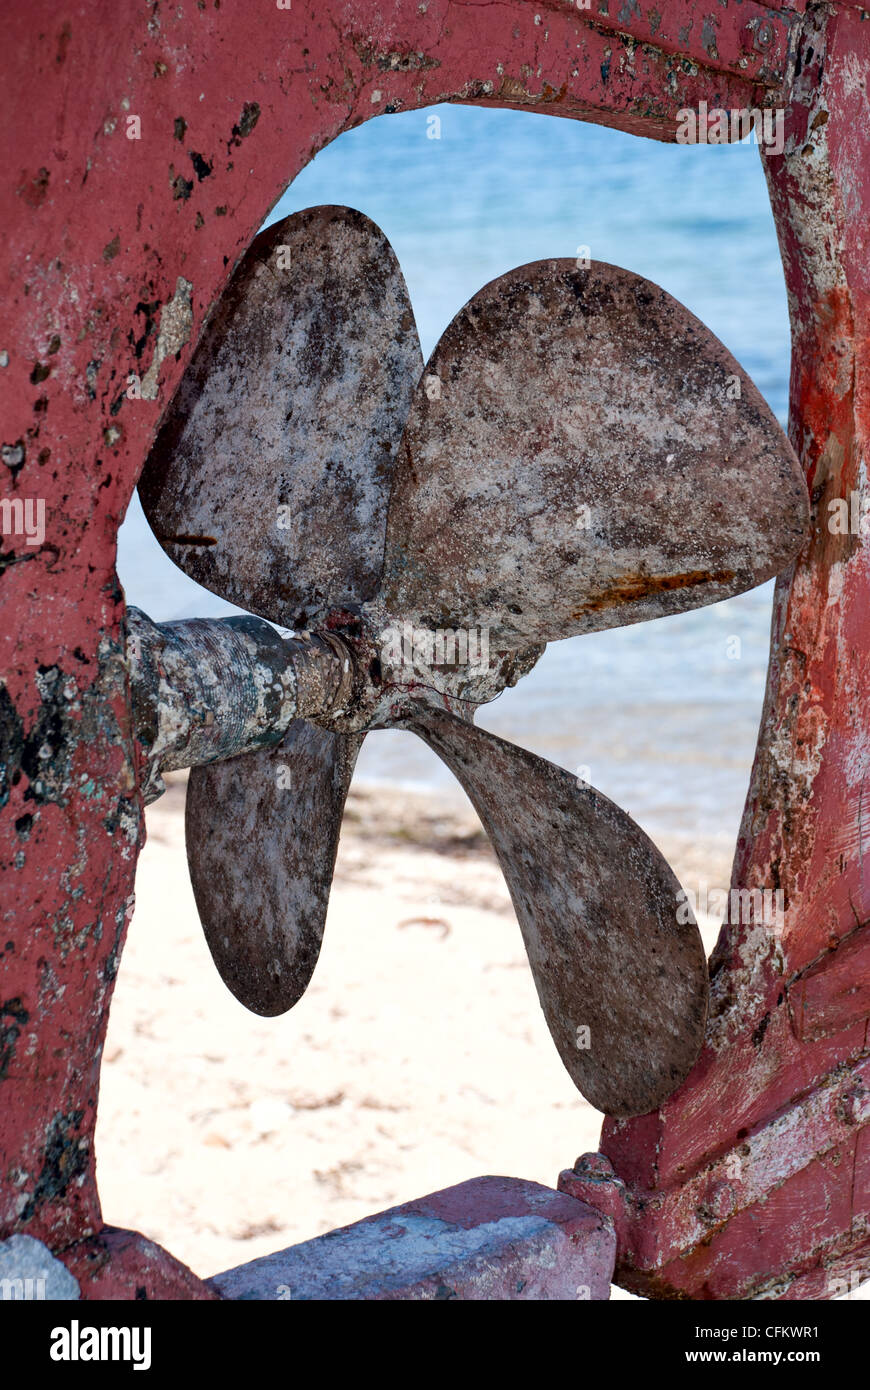 Closeup of an old boat rusty propeller - Stock Image